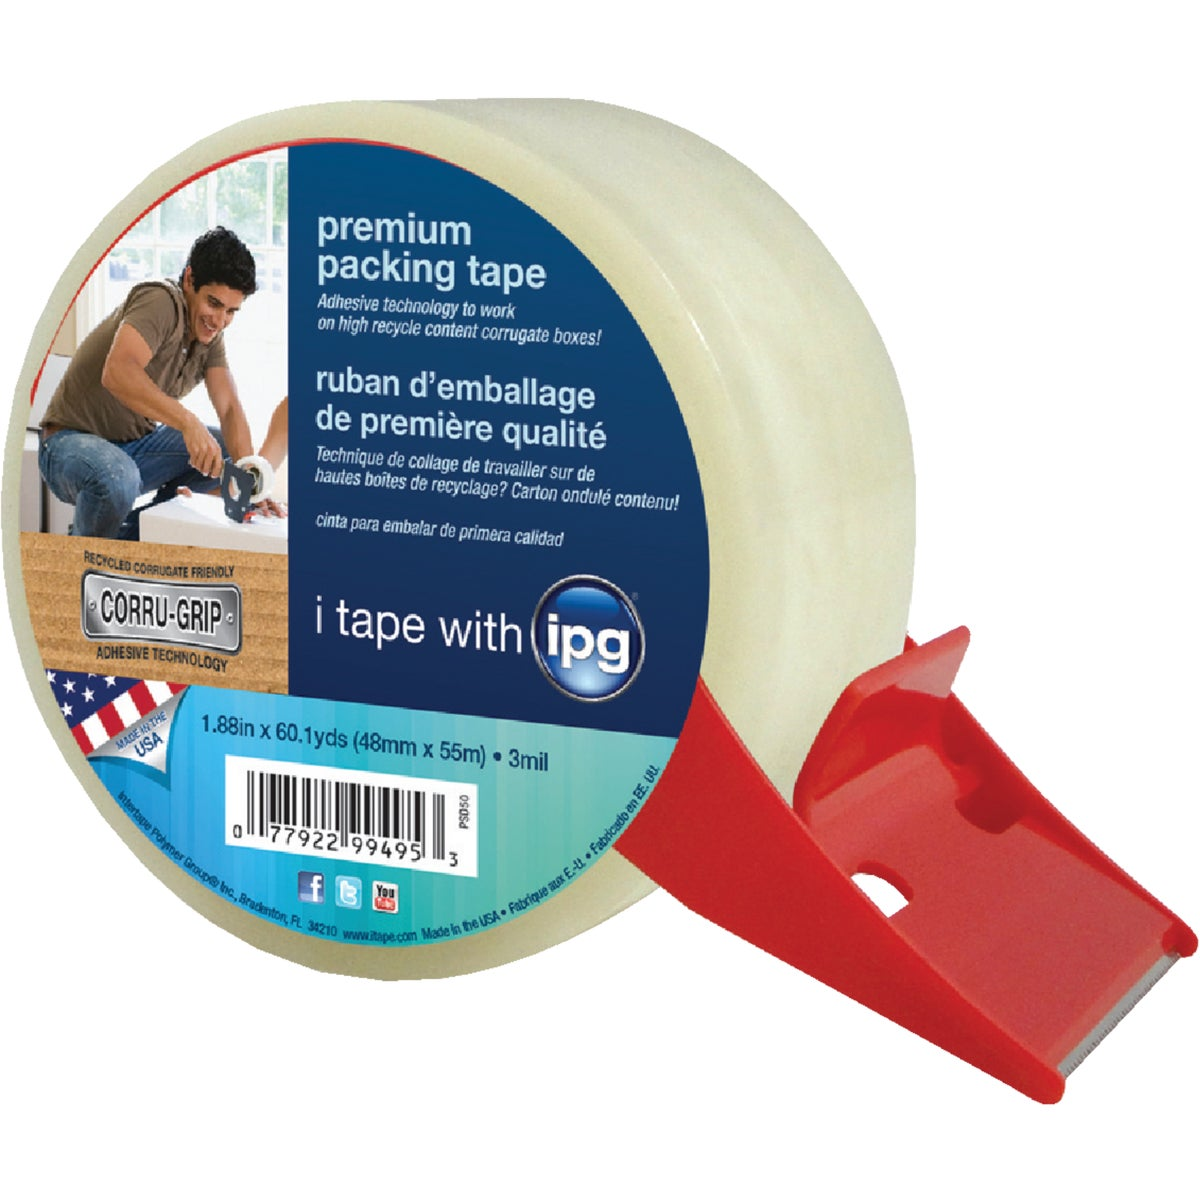 PREM CLR PCK TAPE W/DIS - PSD50 by Intertape Polymer